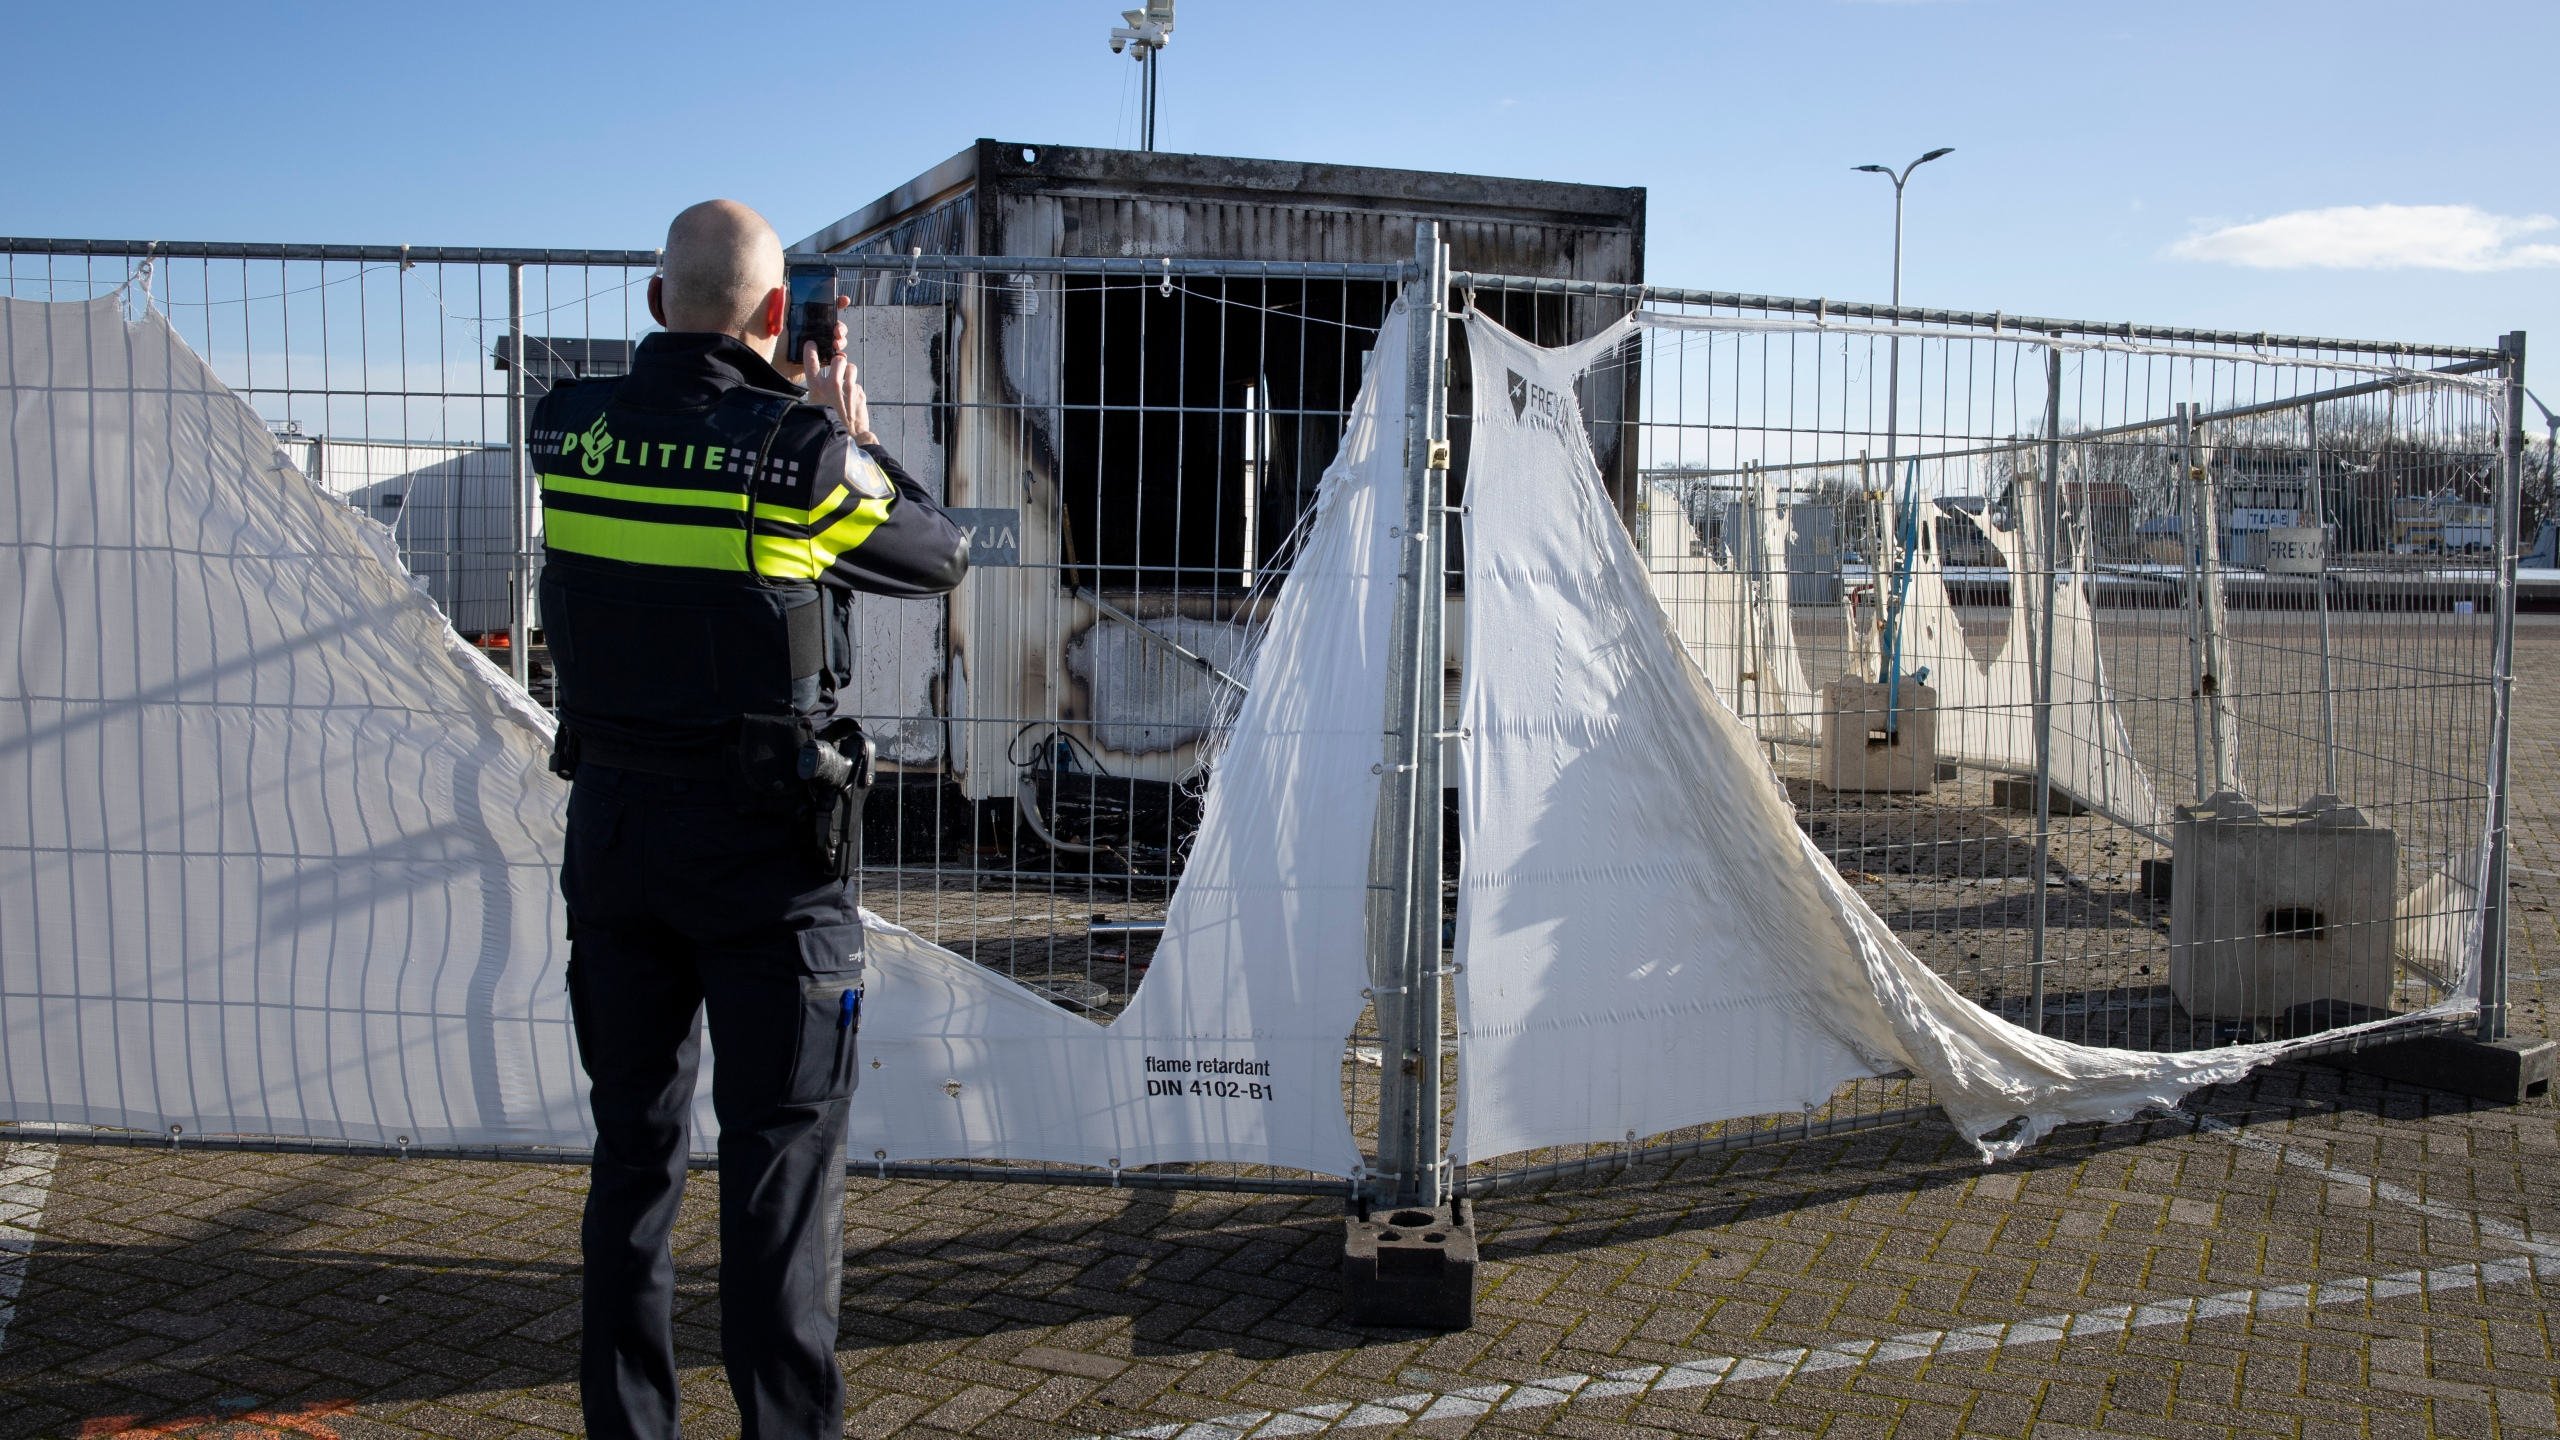 A police officer takes pictures of a burned-out coronavirus testing facility in the fishing village of Urk in the Netherlands on Jan. 24, 2021, after it was set on fire the night before by rioting youths protesting on the first night of a nationwide curfew. (Peter Dejong / Associated Press)